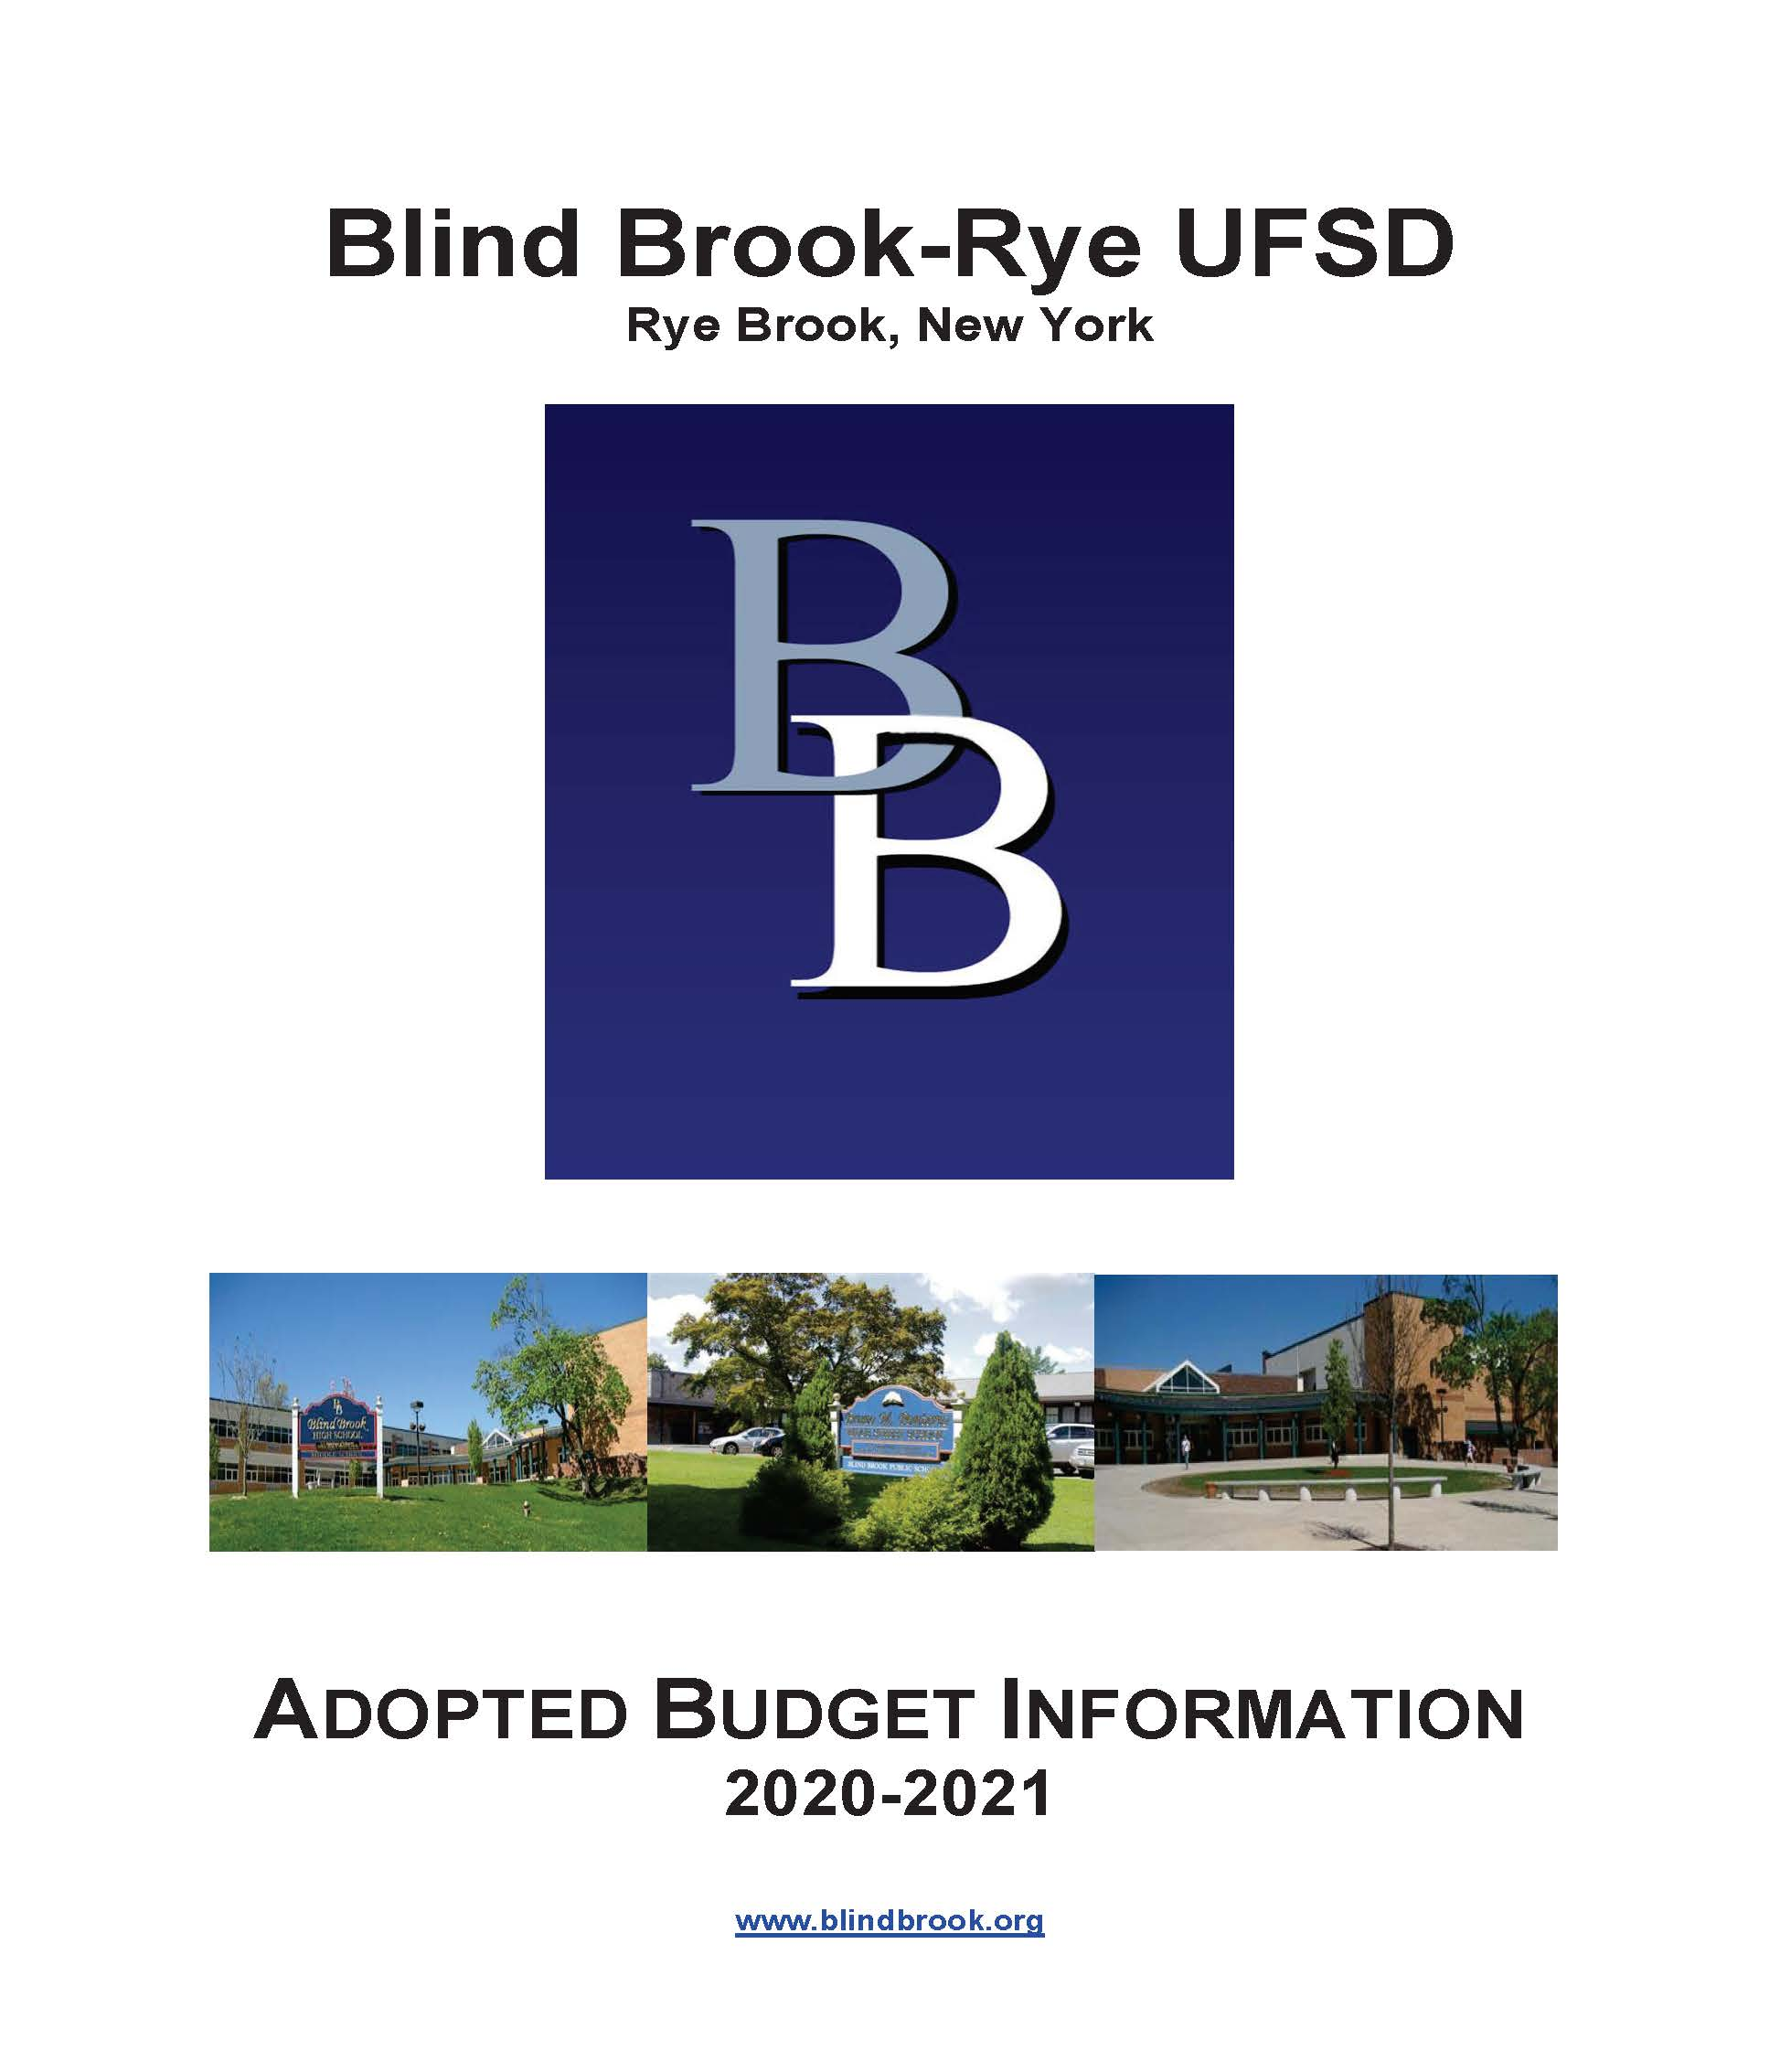 2020-2021 Adopted Budget Information